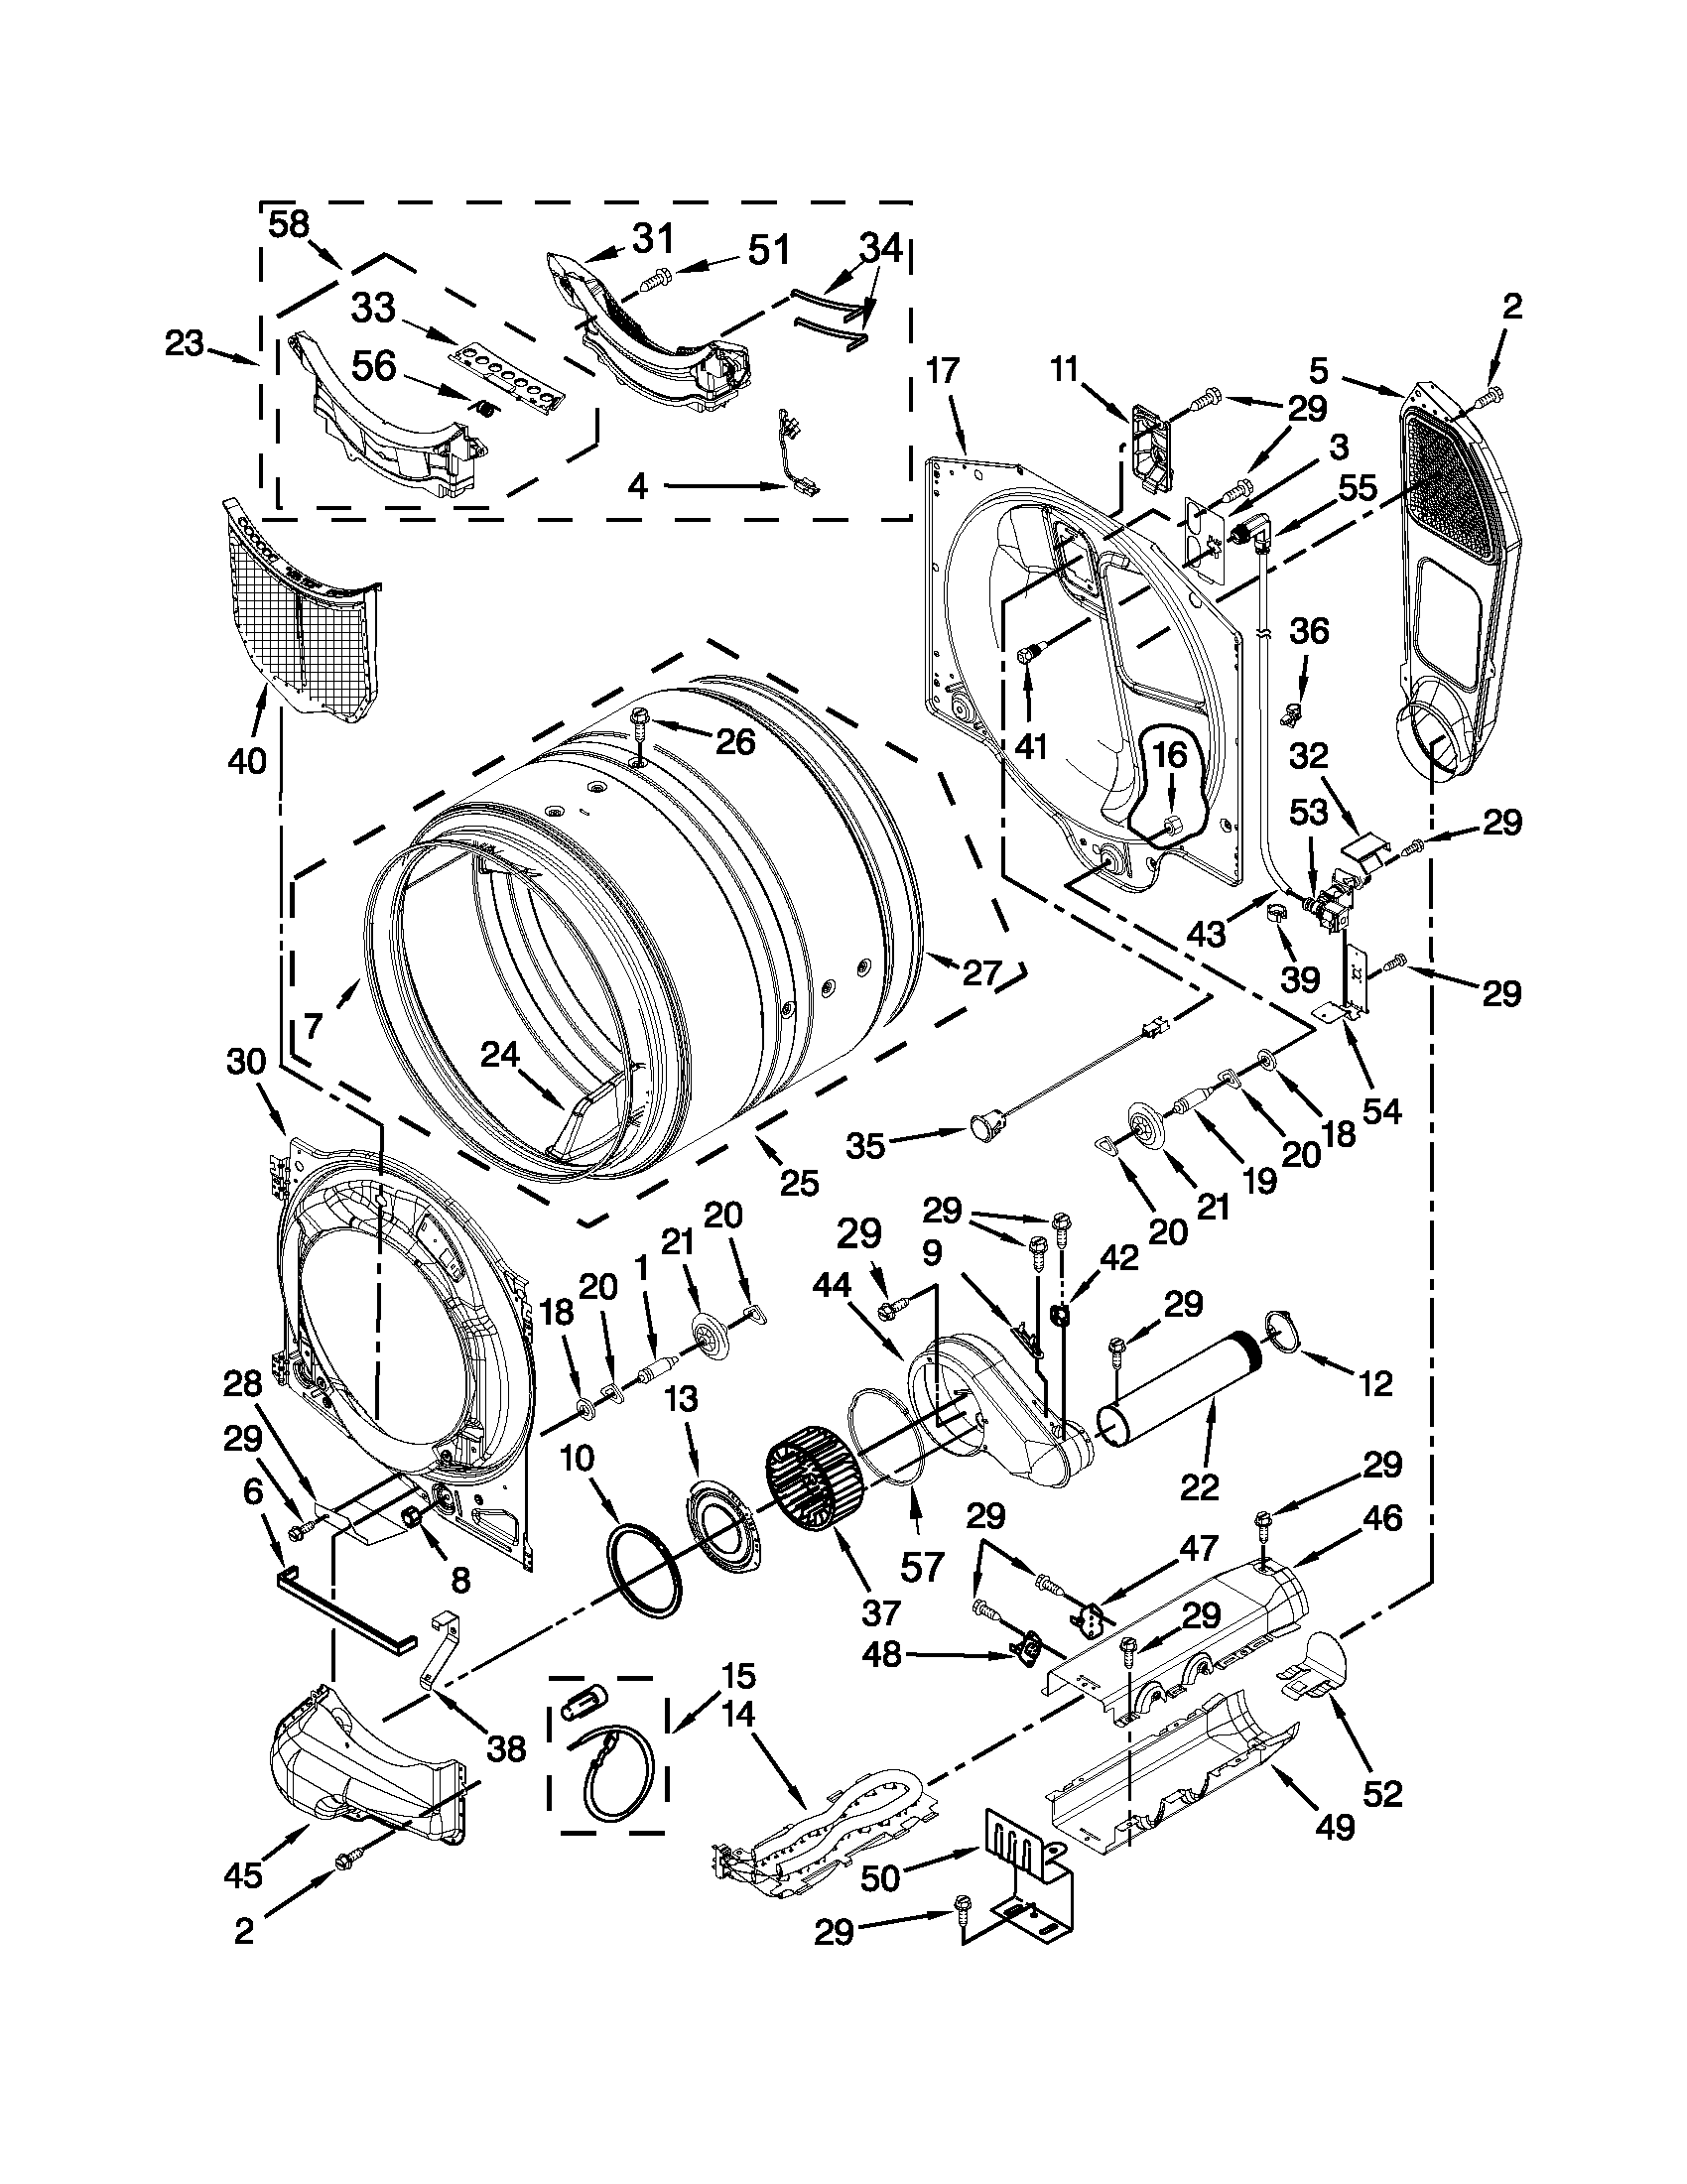 BULKHEAD PARTS Diagram & Parts List for Model med6000xw1